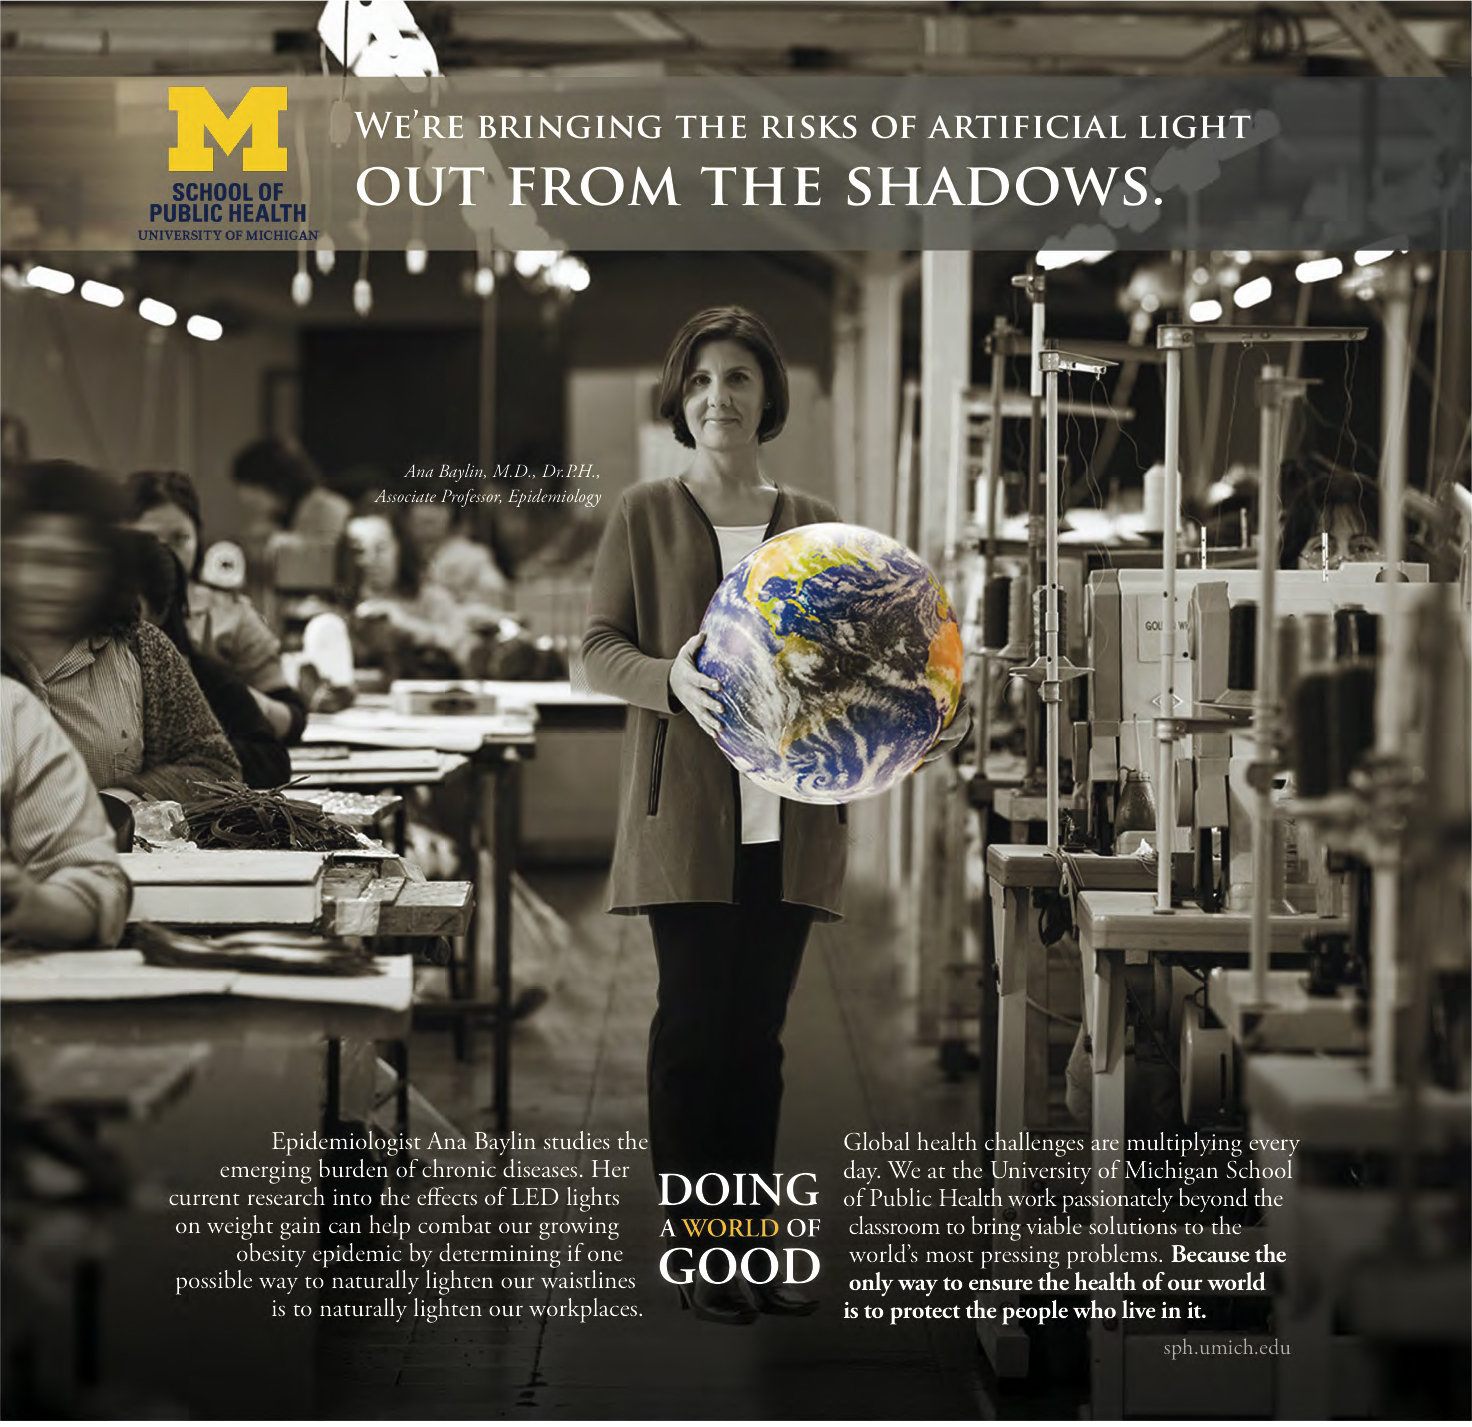 University of Michigan School of Public Health, Doing A World of Good Campaign